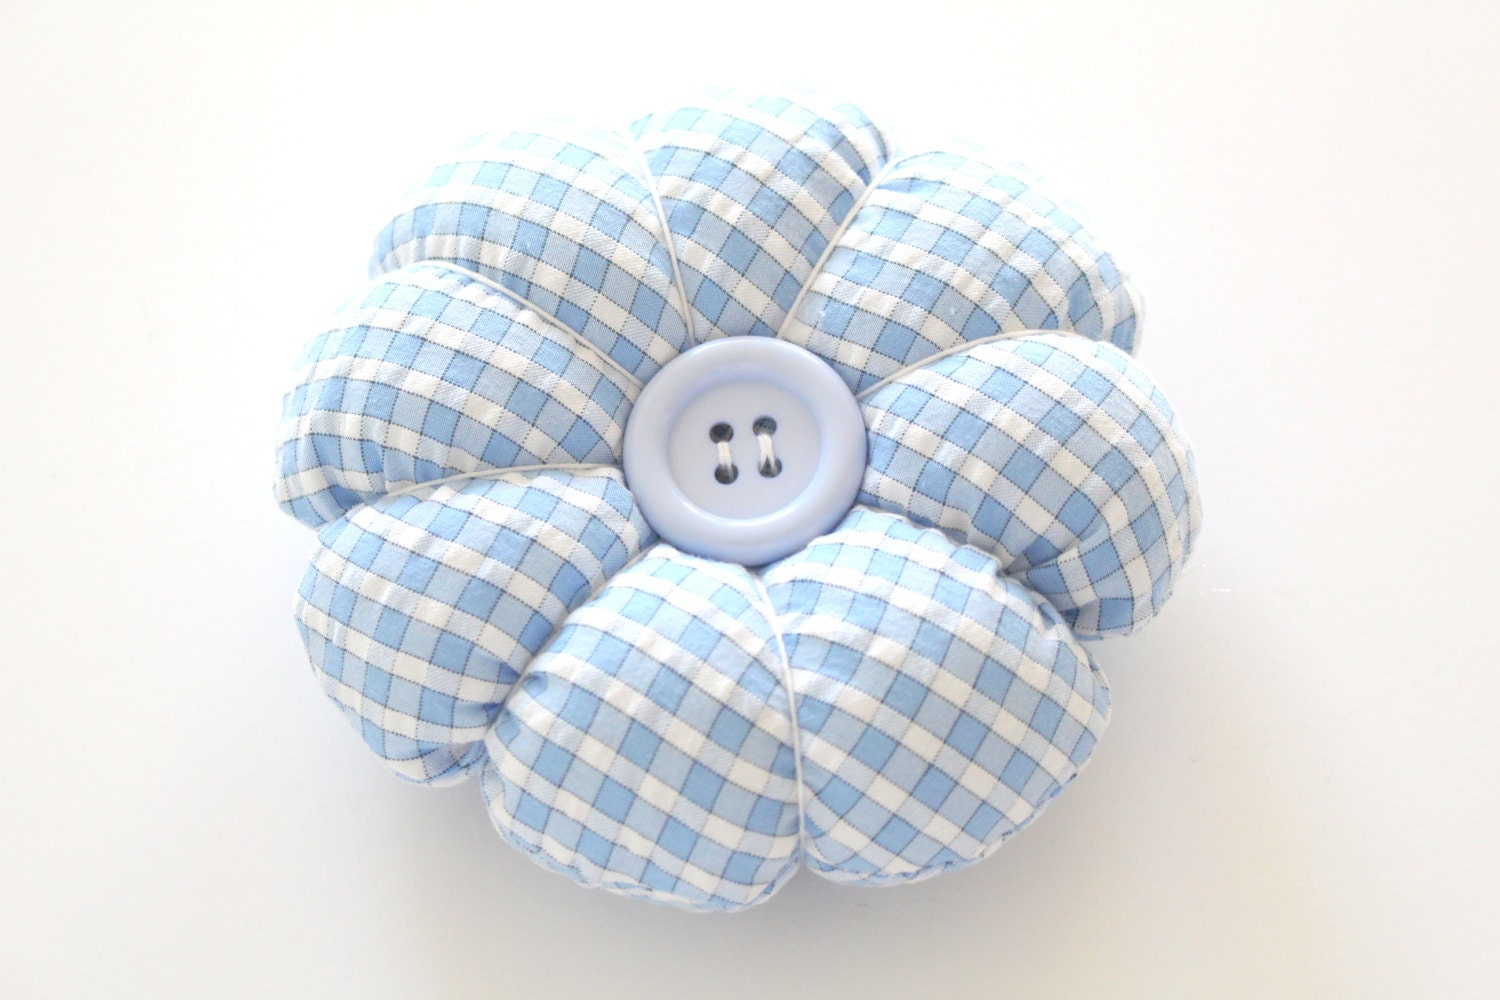 PIN CUSHION Handmade Round Plumpy Pin Cushion Gifts for